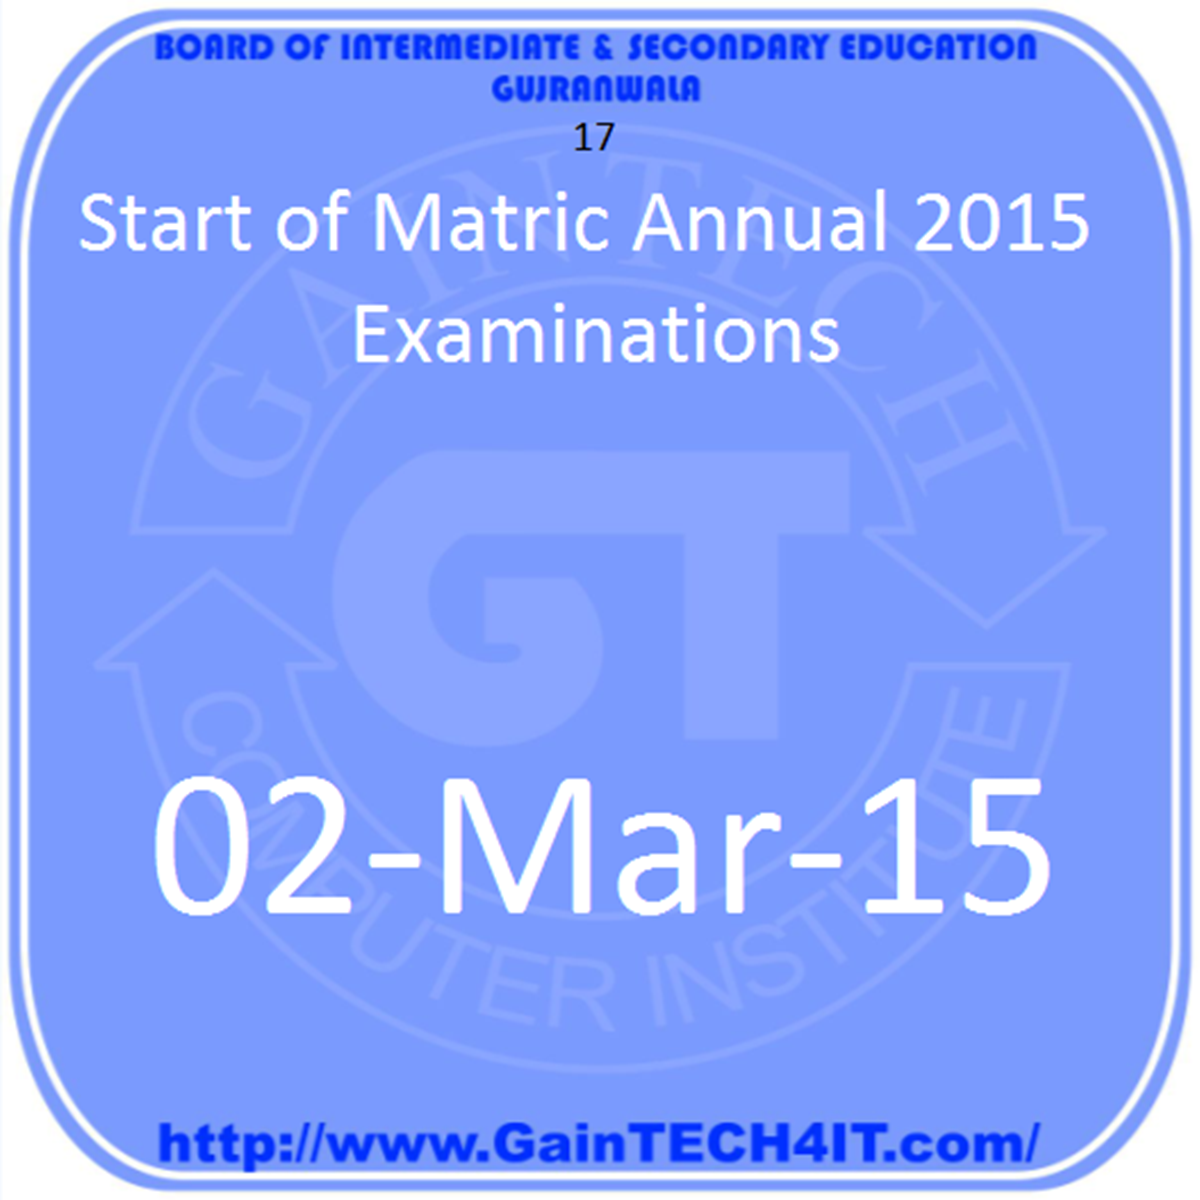 Matric (Annual) Examination, 2015 gujranwala board